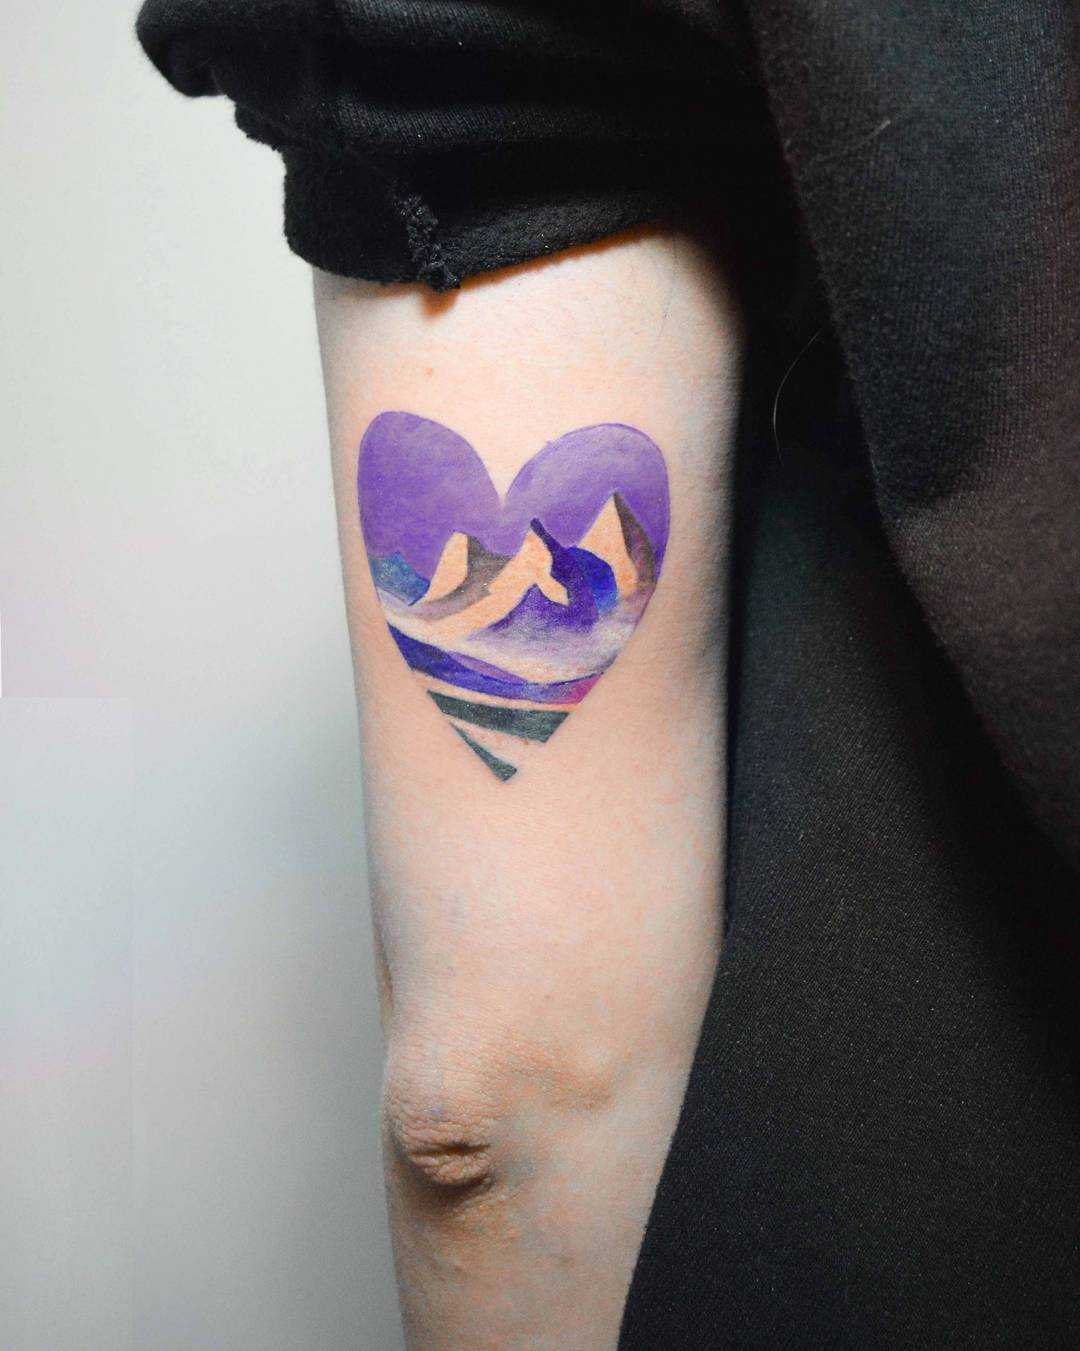 Heart-shaped mountain tattoo by Mavka Leesova